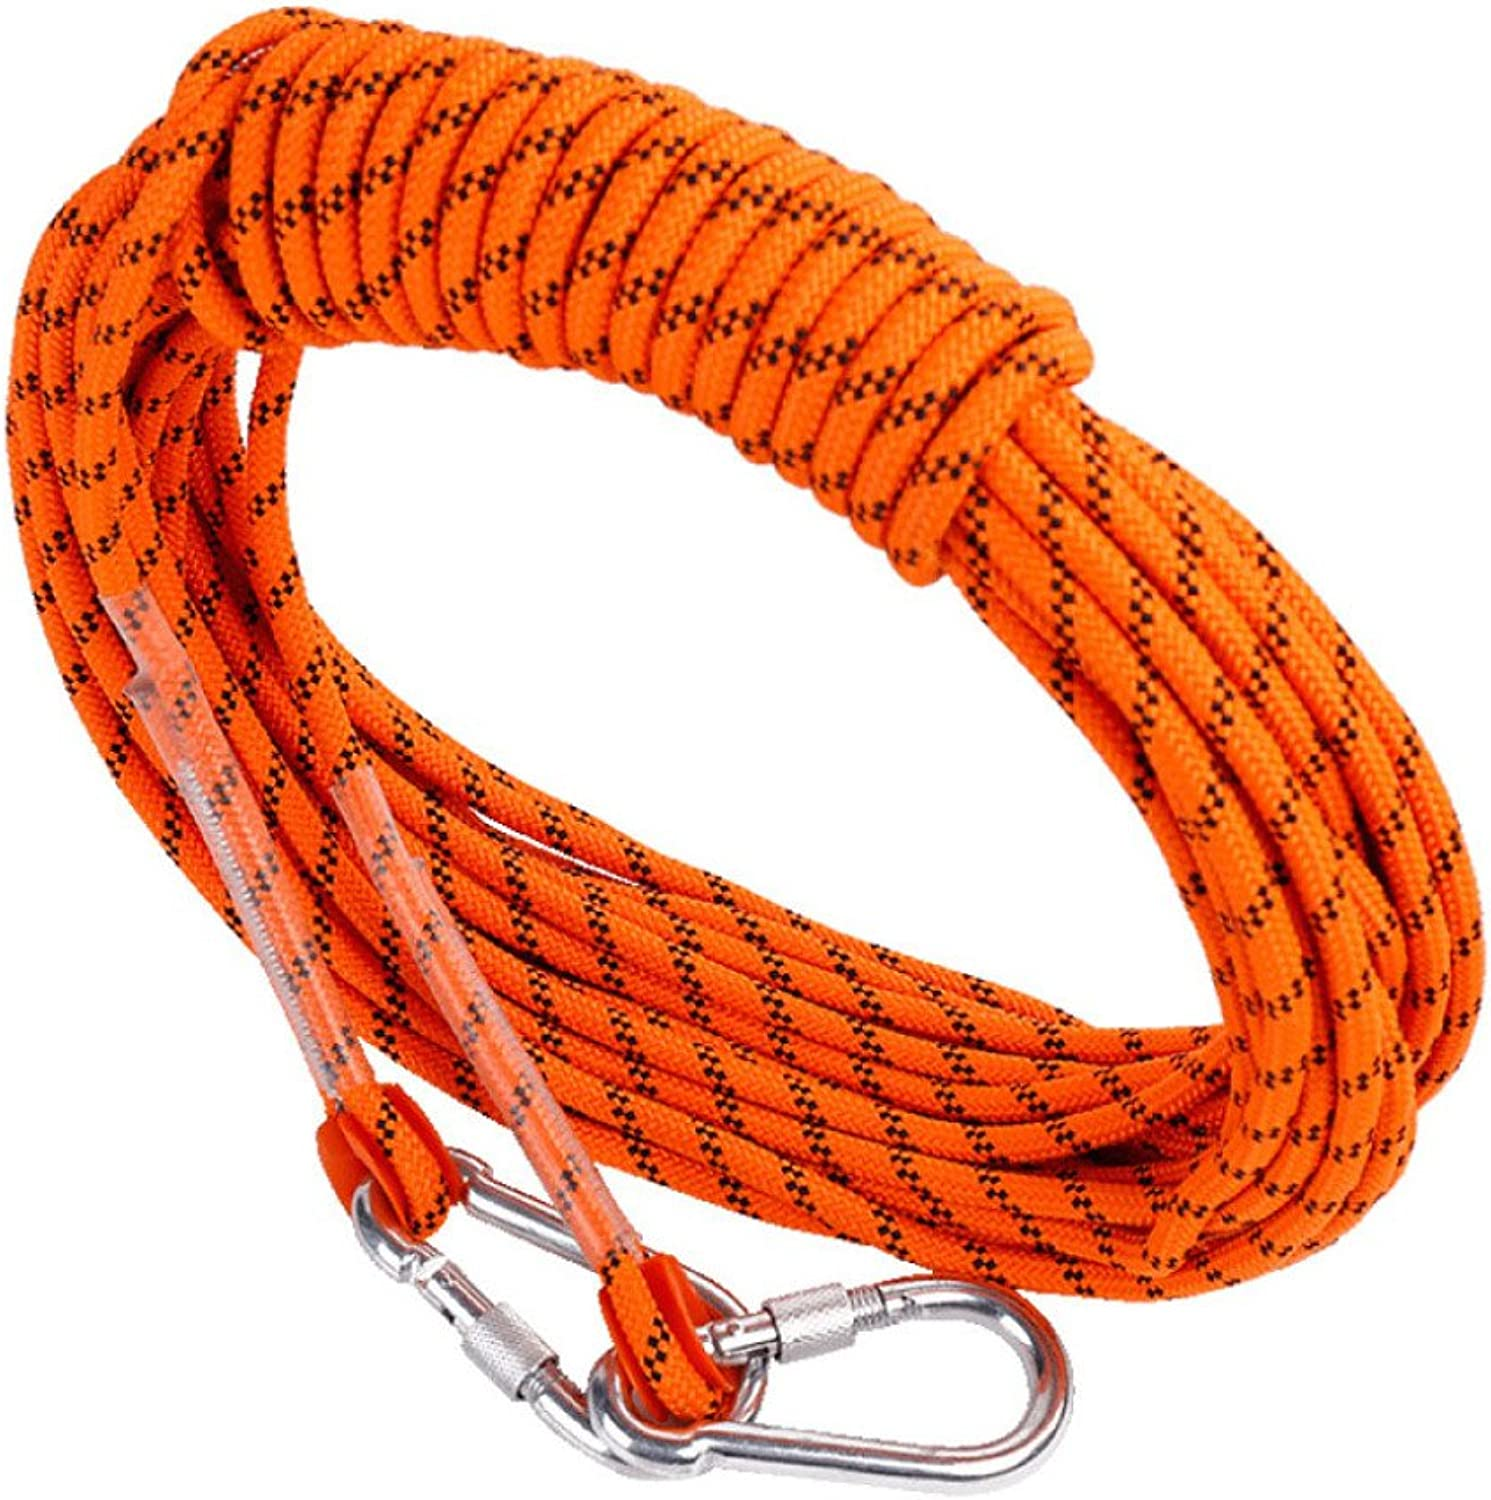 Outdoor Rock Climbing Ropes, Escape Lifesaving Rescue Floating Bundle Speed Drop Rope,orange10m8mm